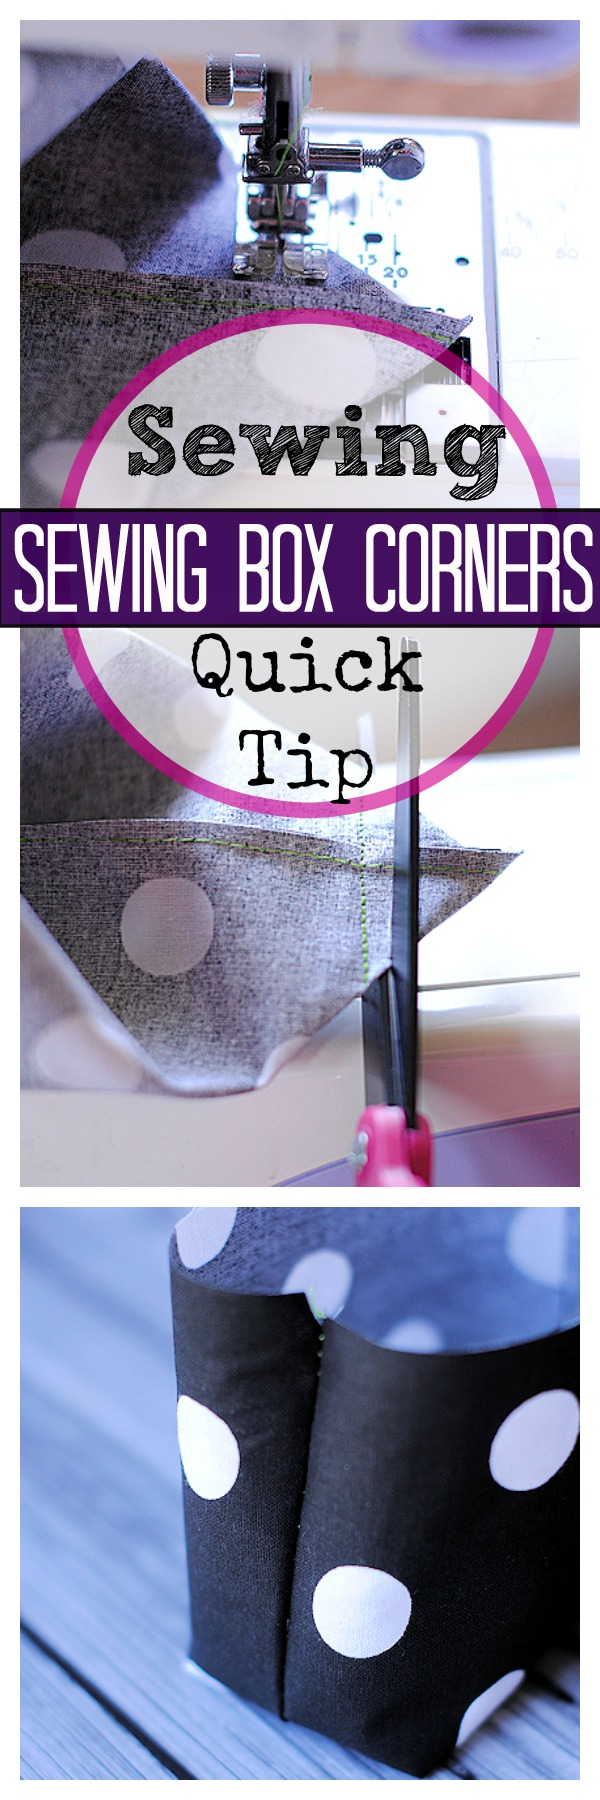 Sewing Quick Tip: How to Sew Box Corners